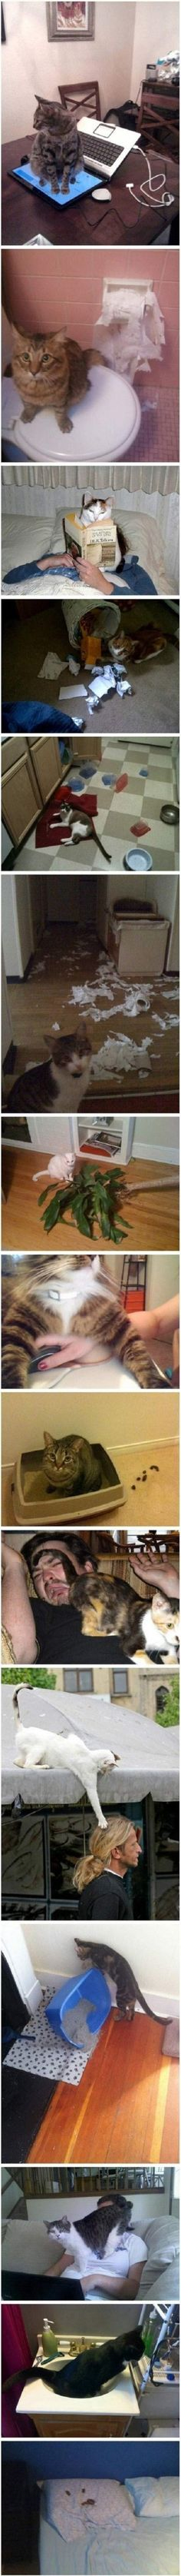 Cats Doing Evil Things - www.funny-pictures-blog.com